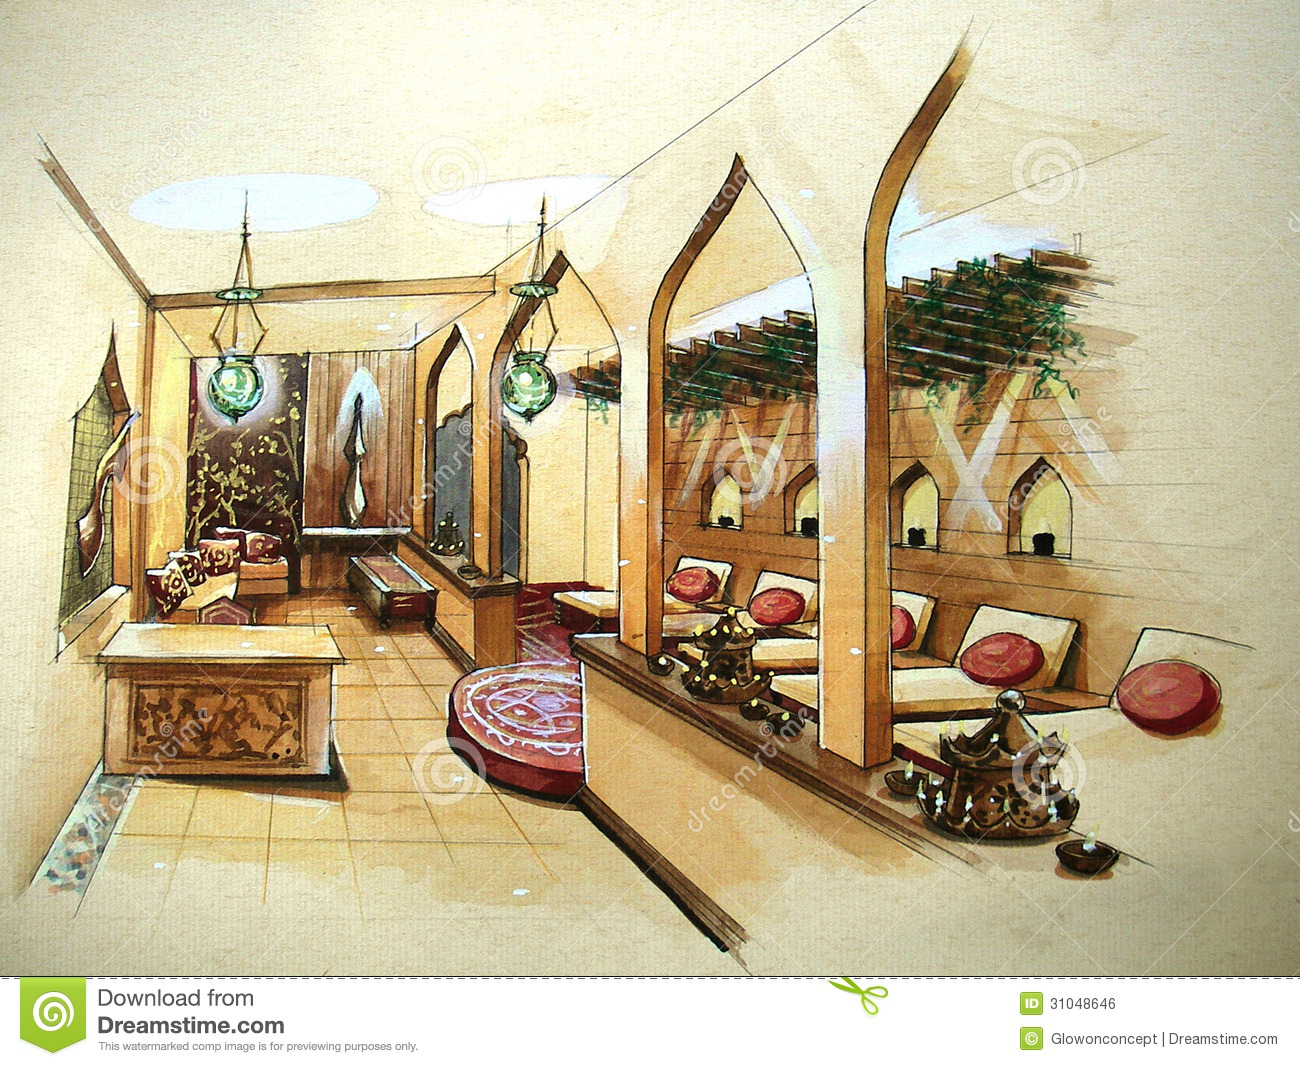 Spa design interior illustration royalty free stock image for Image of interior design